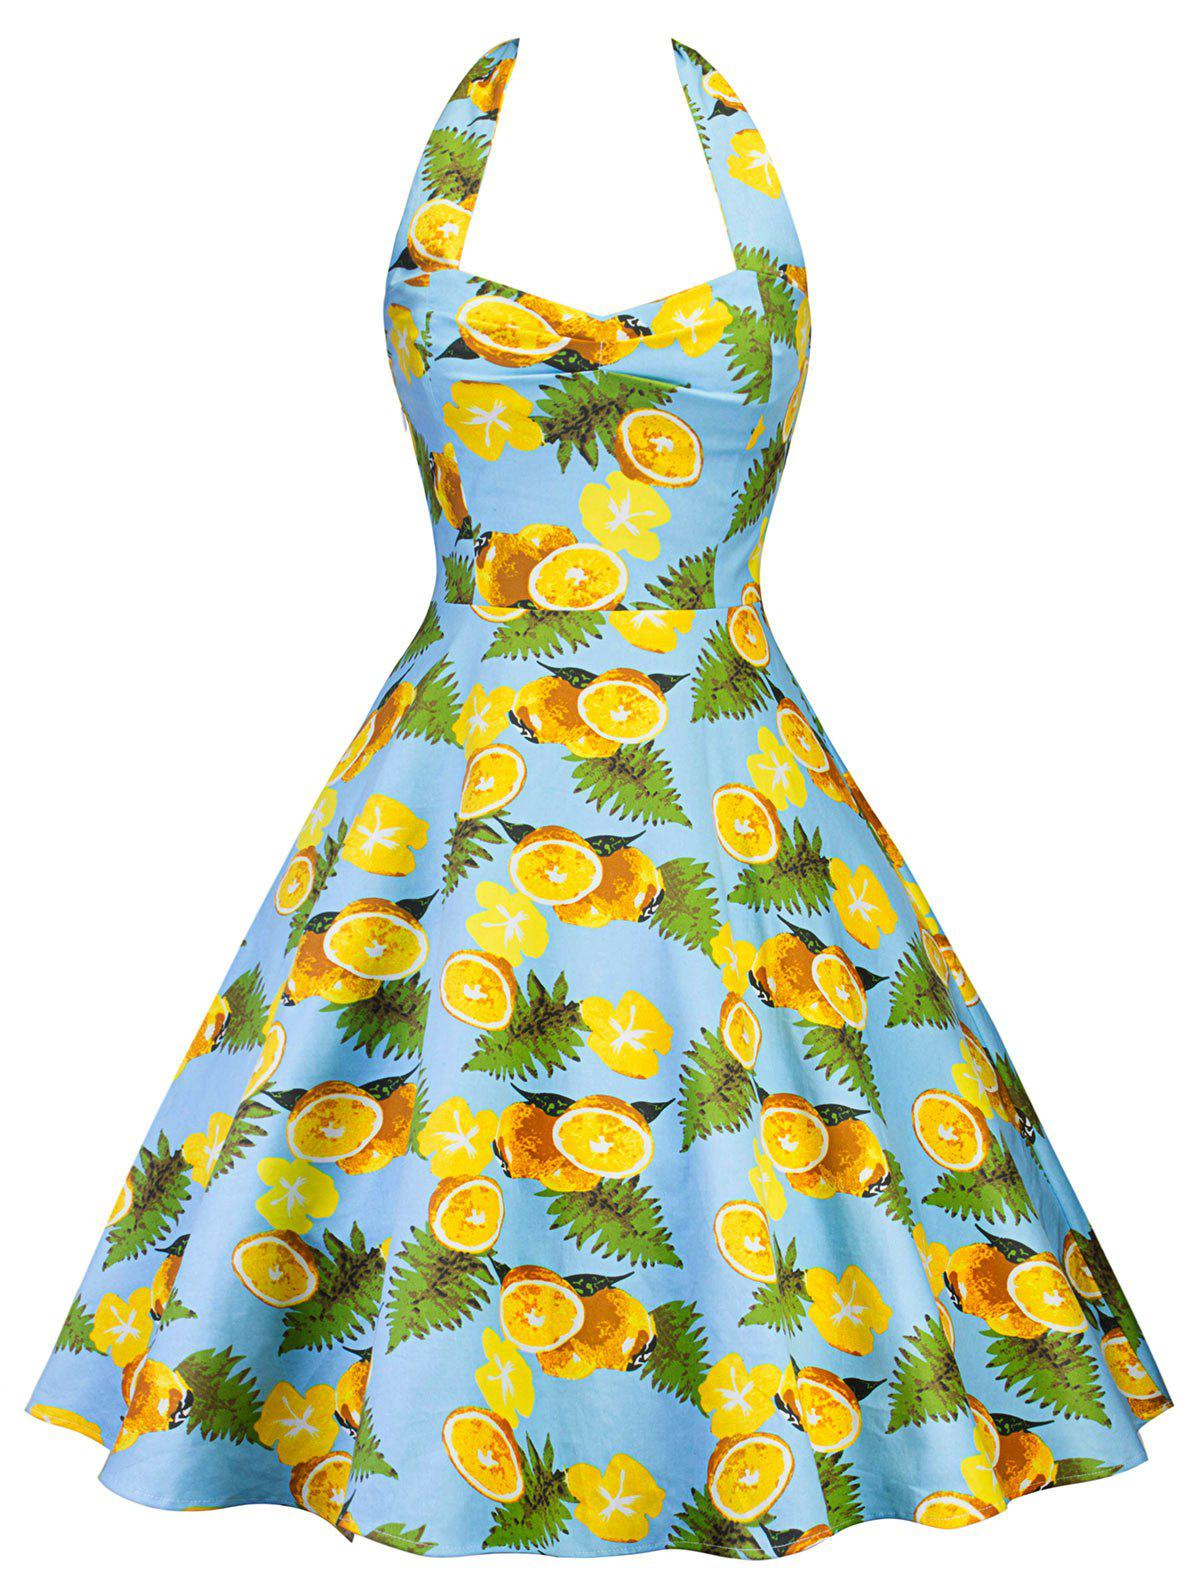 Vintage Lemon Print Halter Pin Up Dress vintage halter neck lemon print dress for women